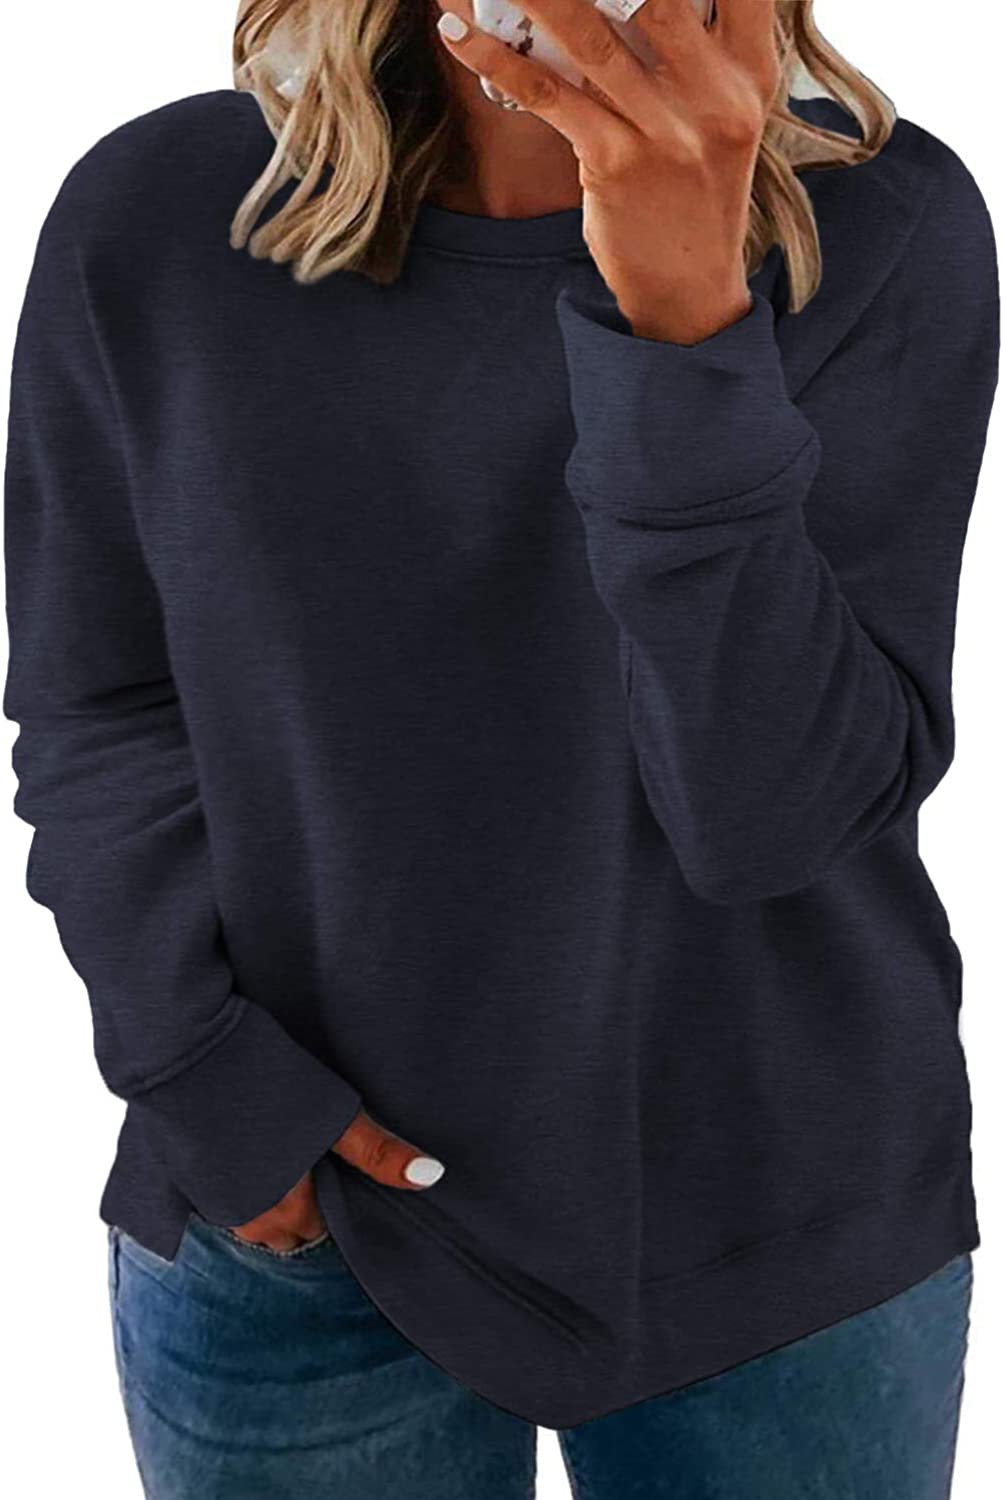 ROSRISS Plus-Size Sweatshirts for Women Long Sleeve Tops Pullover Shirts